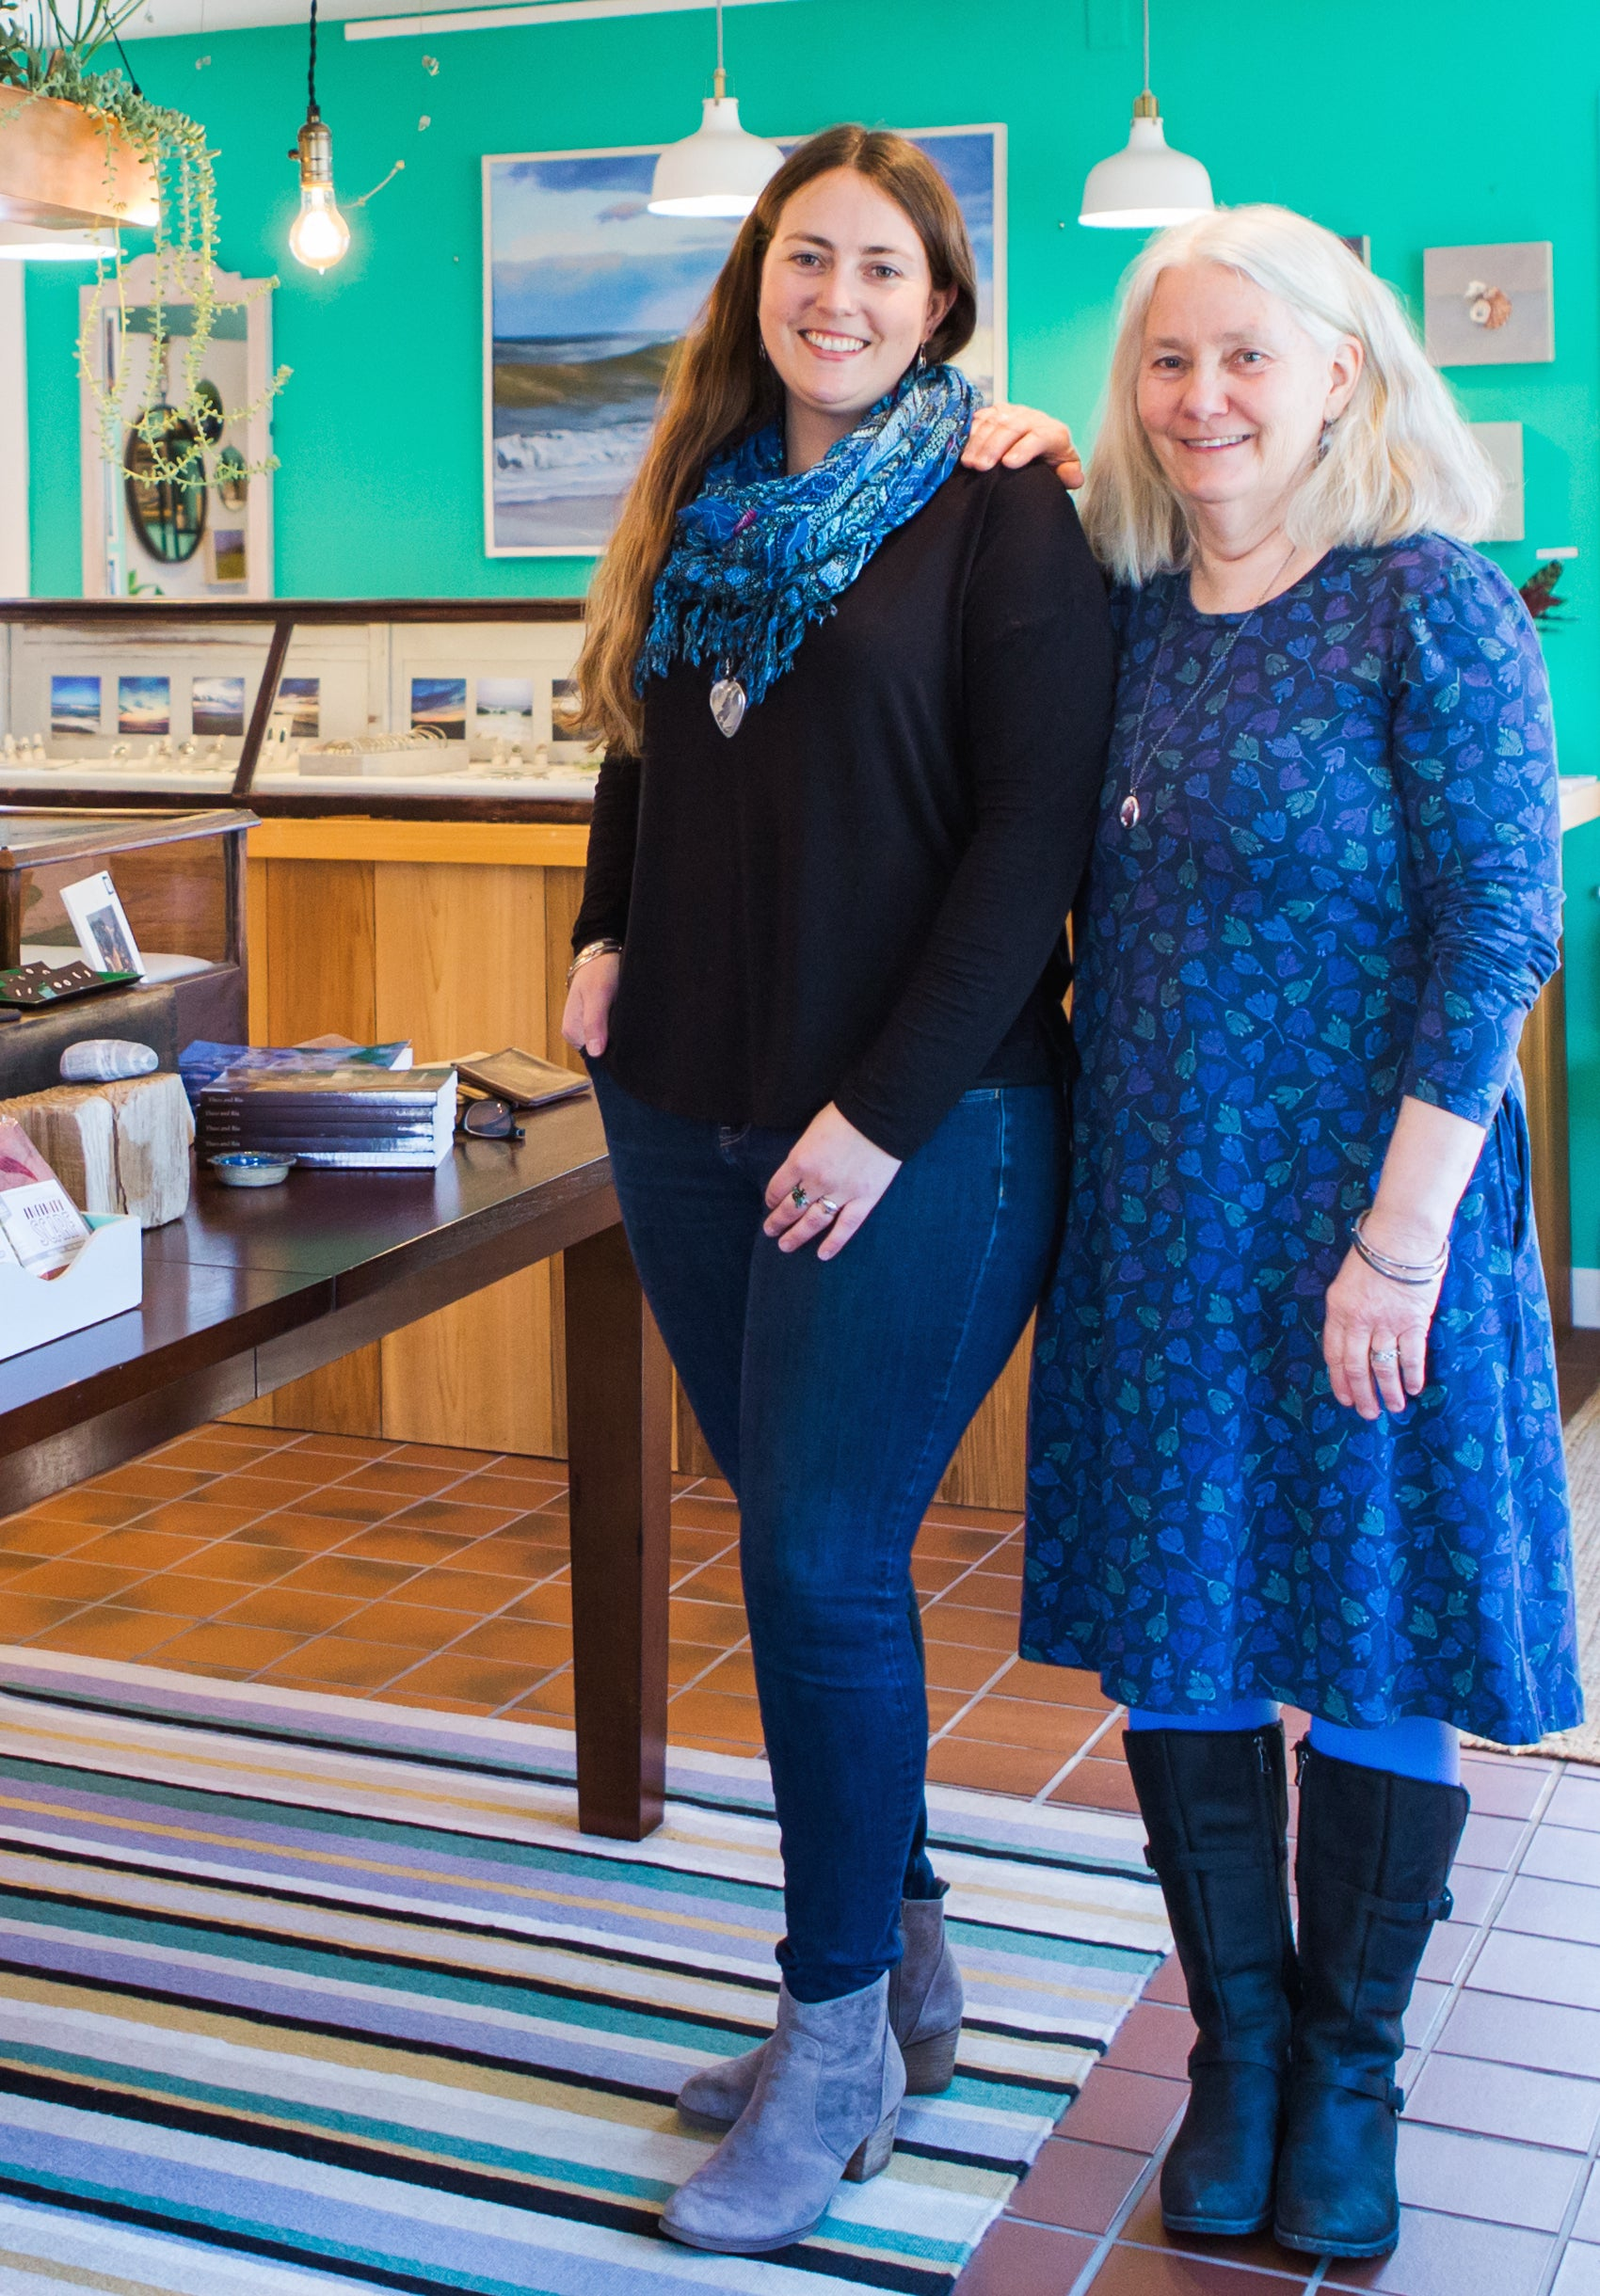 Jenny and Molly Avellar, owners of Adorn in East Orleans, Cape Cod